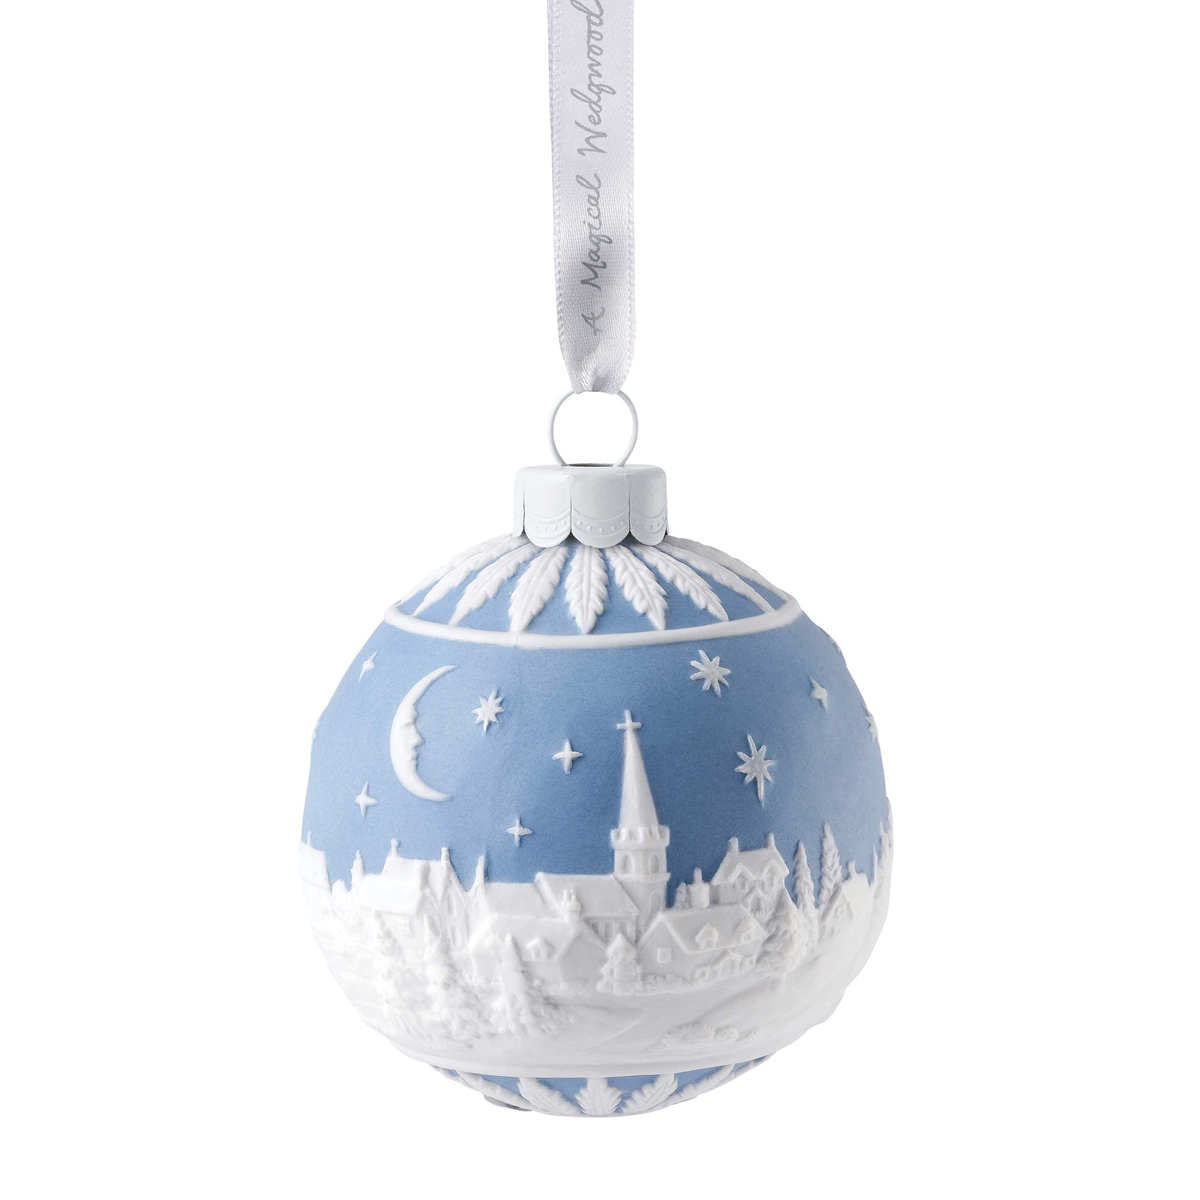 Wedgwood 2020 Christmas Sky at Night Ball Ornament